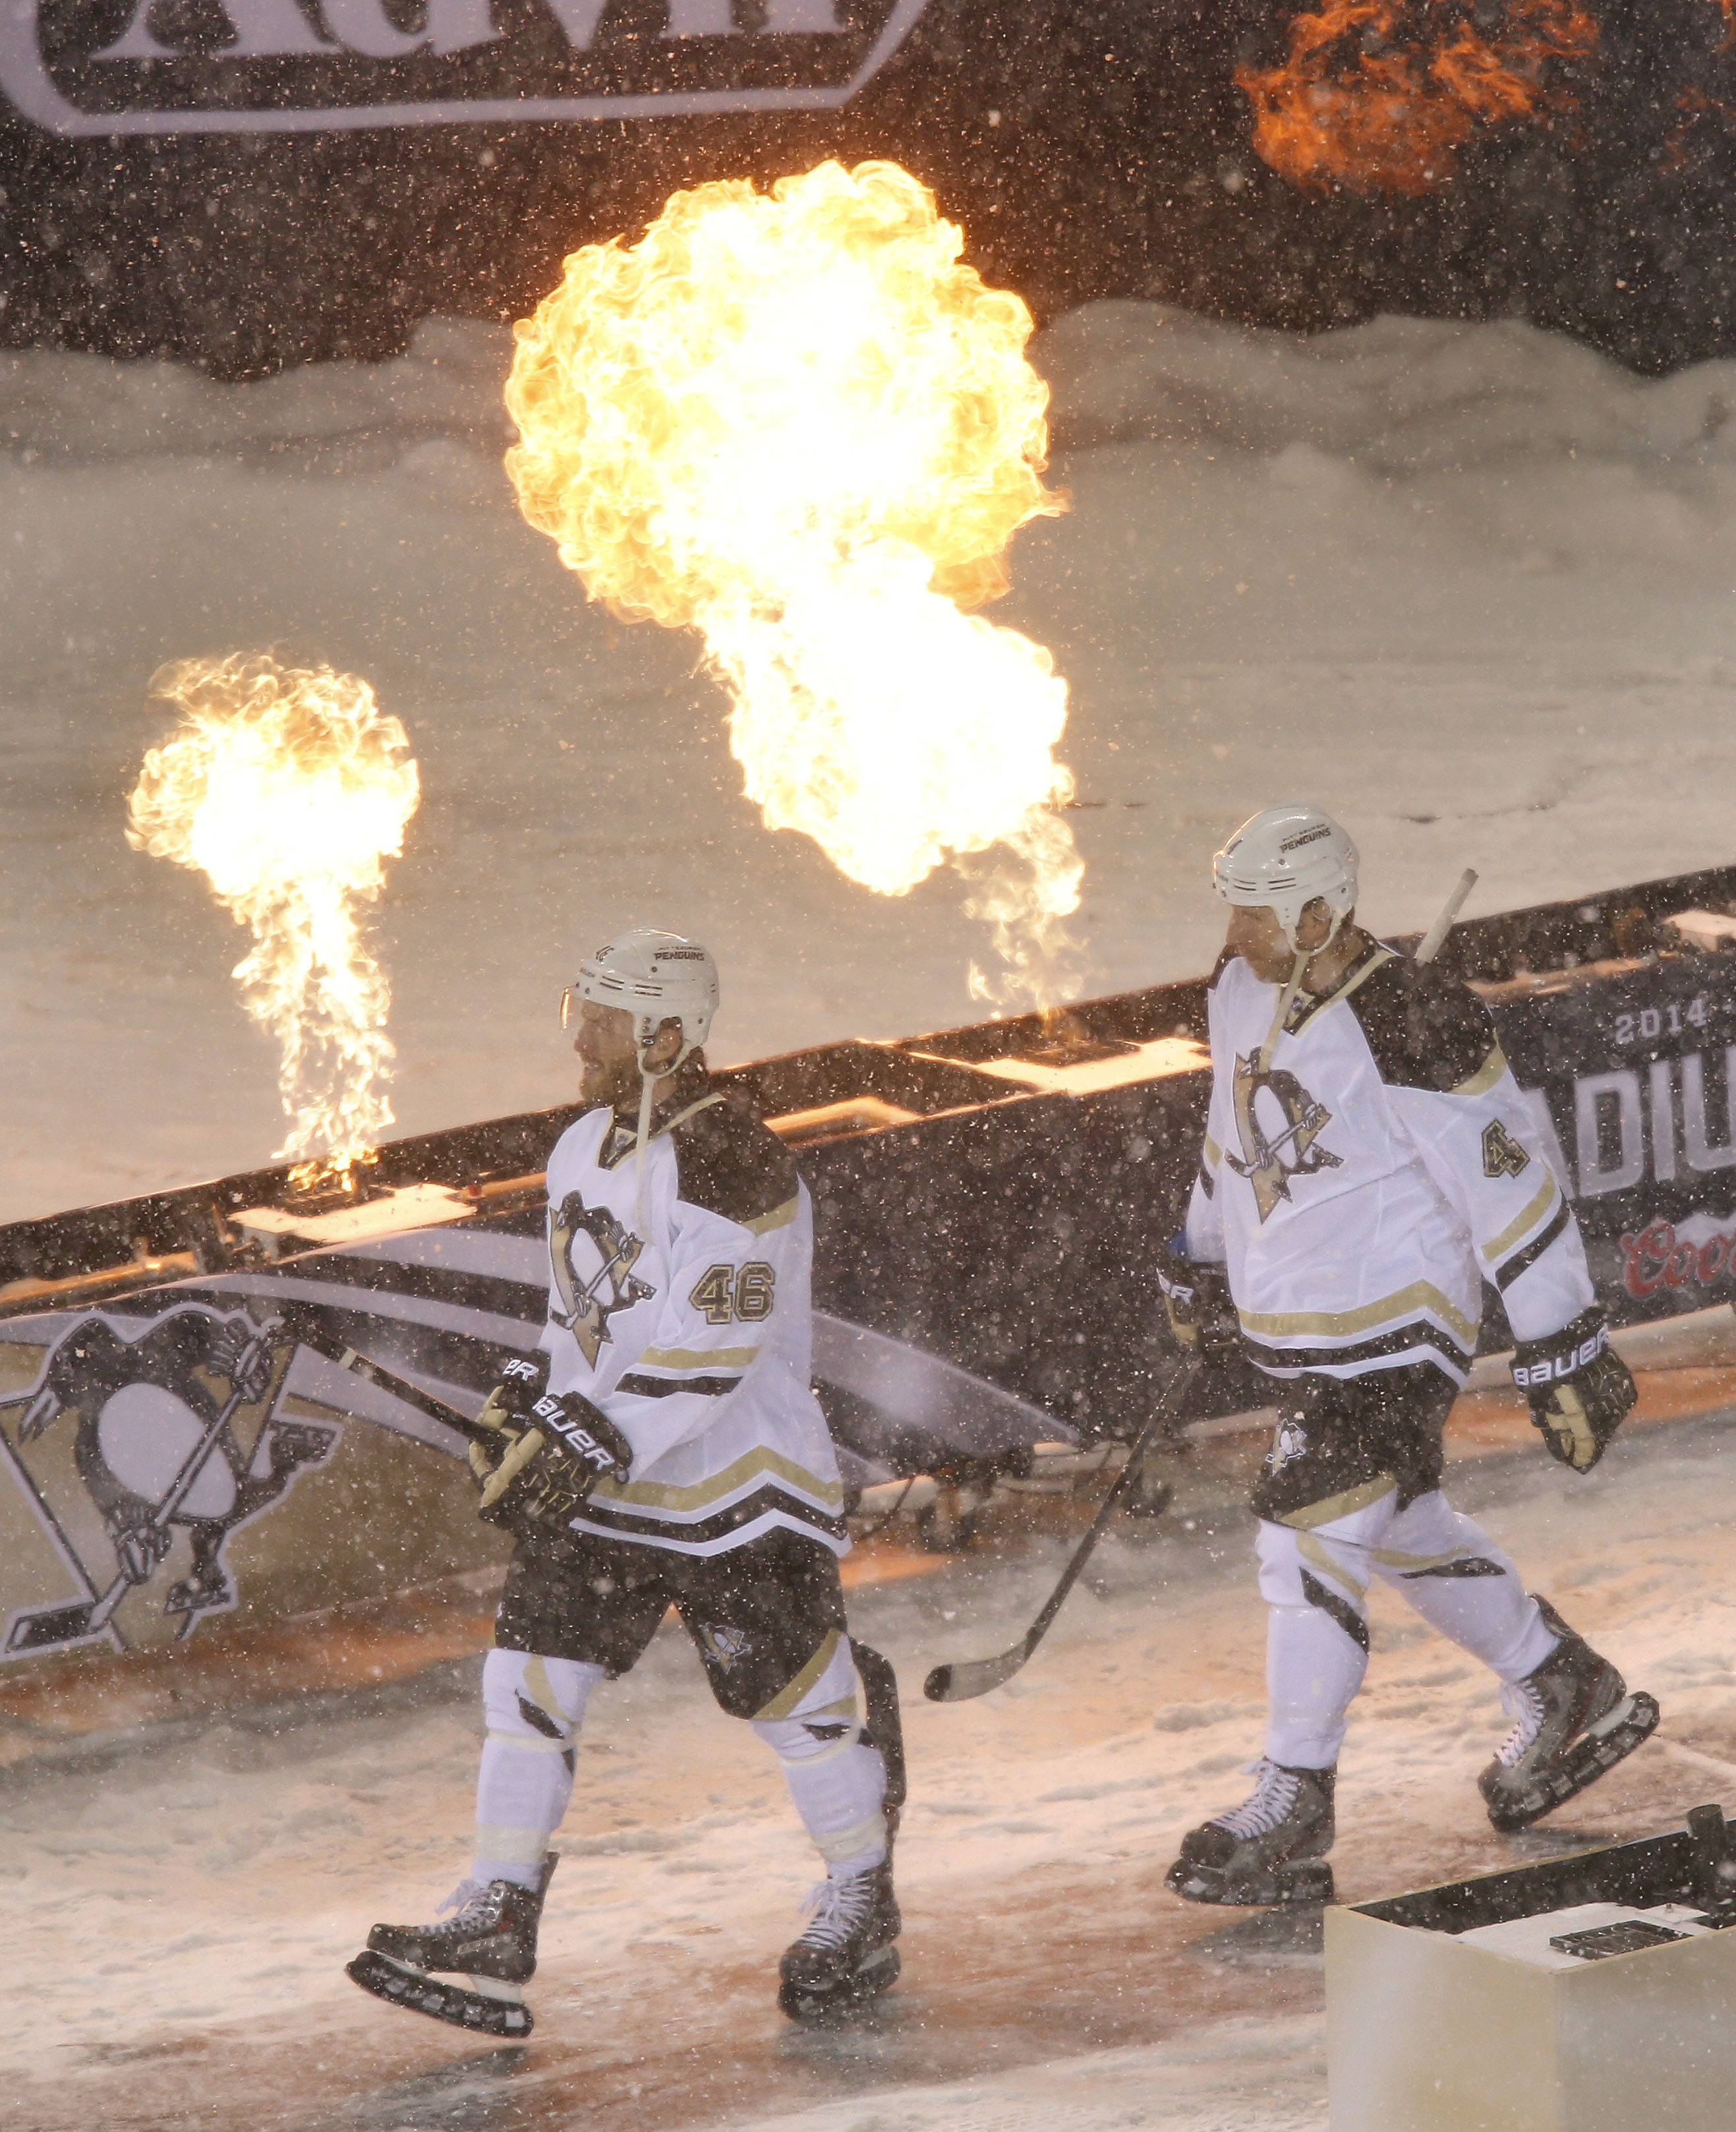 Penguins players enter the ice during NHL Stadium Series between the Blackhawks and the Penguins Saturday at Soldier Field.